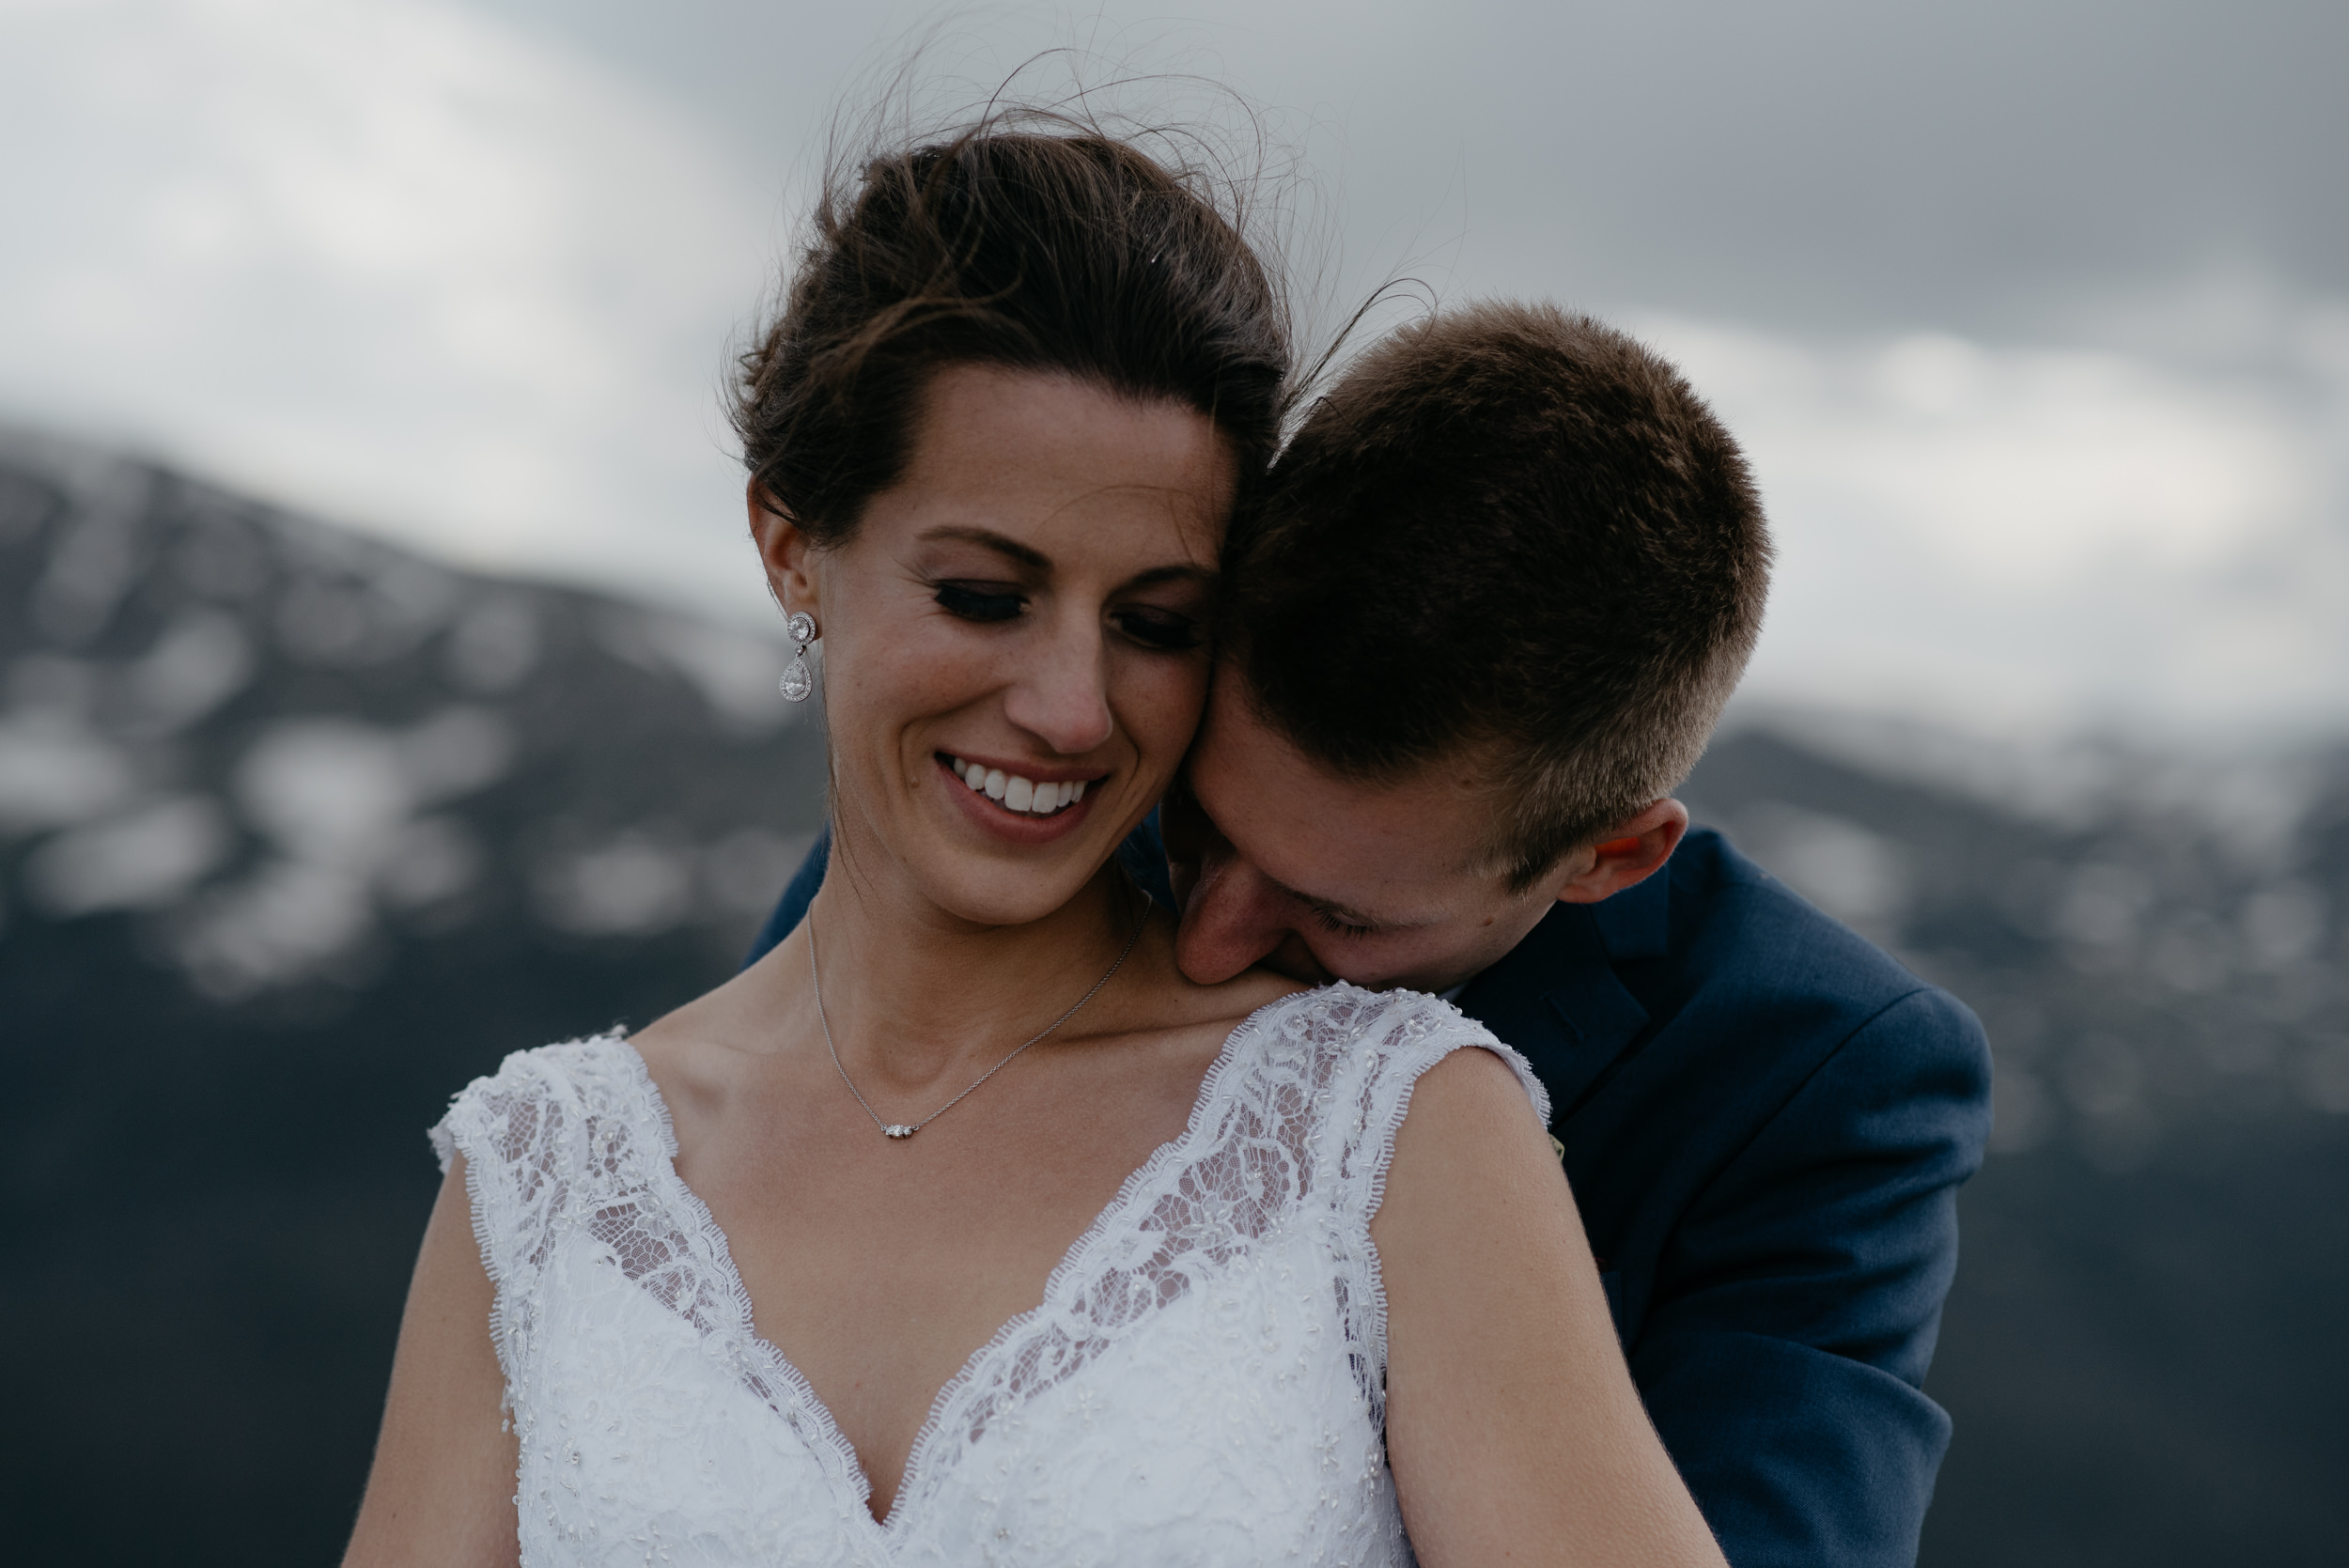 Colorado mountain elopement & wedding photographer. 3M Curve elopement in Rocky Mountain National Park.